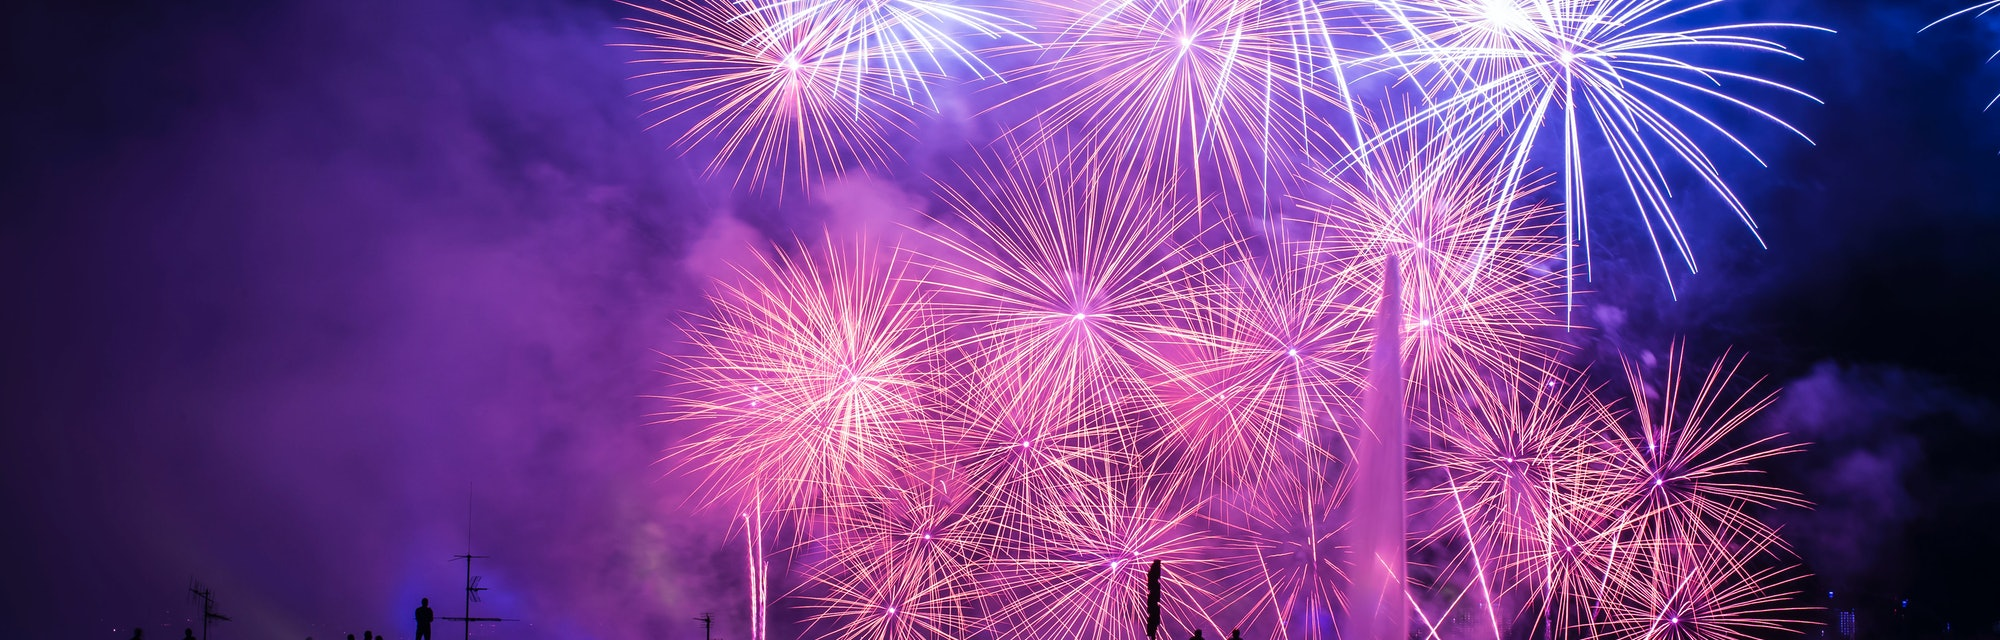 Why Blue Fireworks Are Hard To Make According To Science